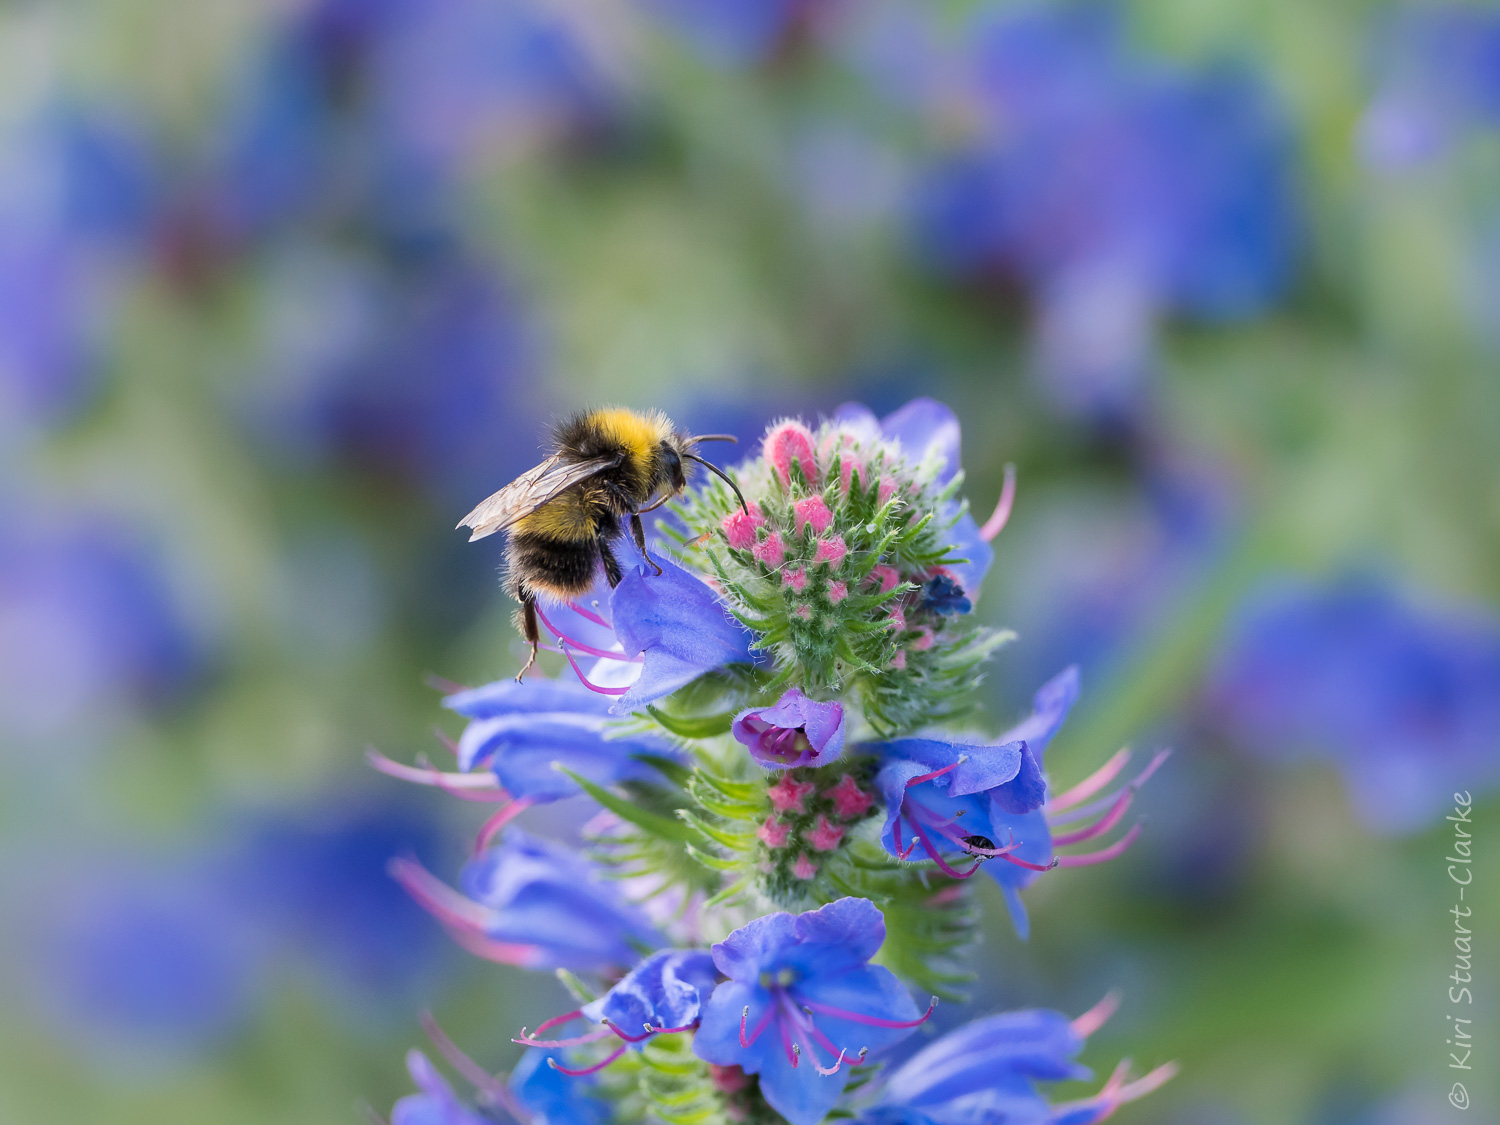 Buff-tailed bumble bee foraging among Viper's-bugloss flowers